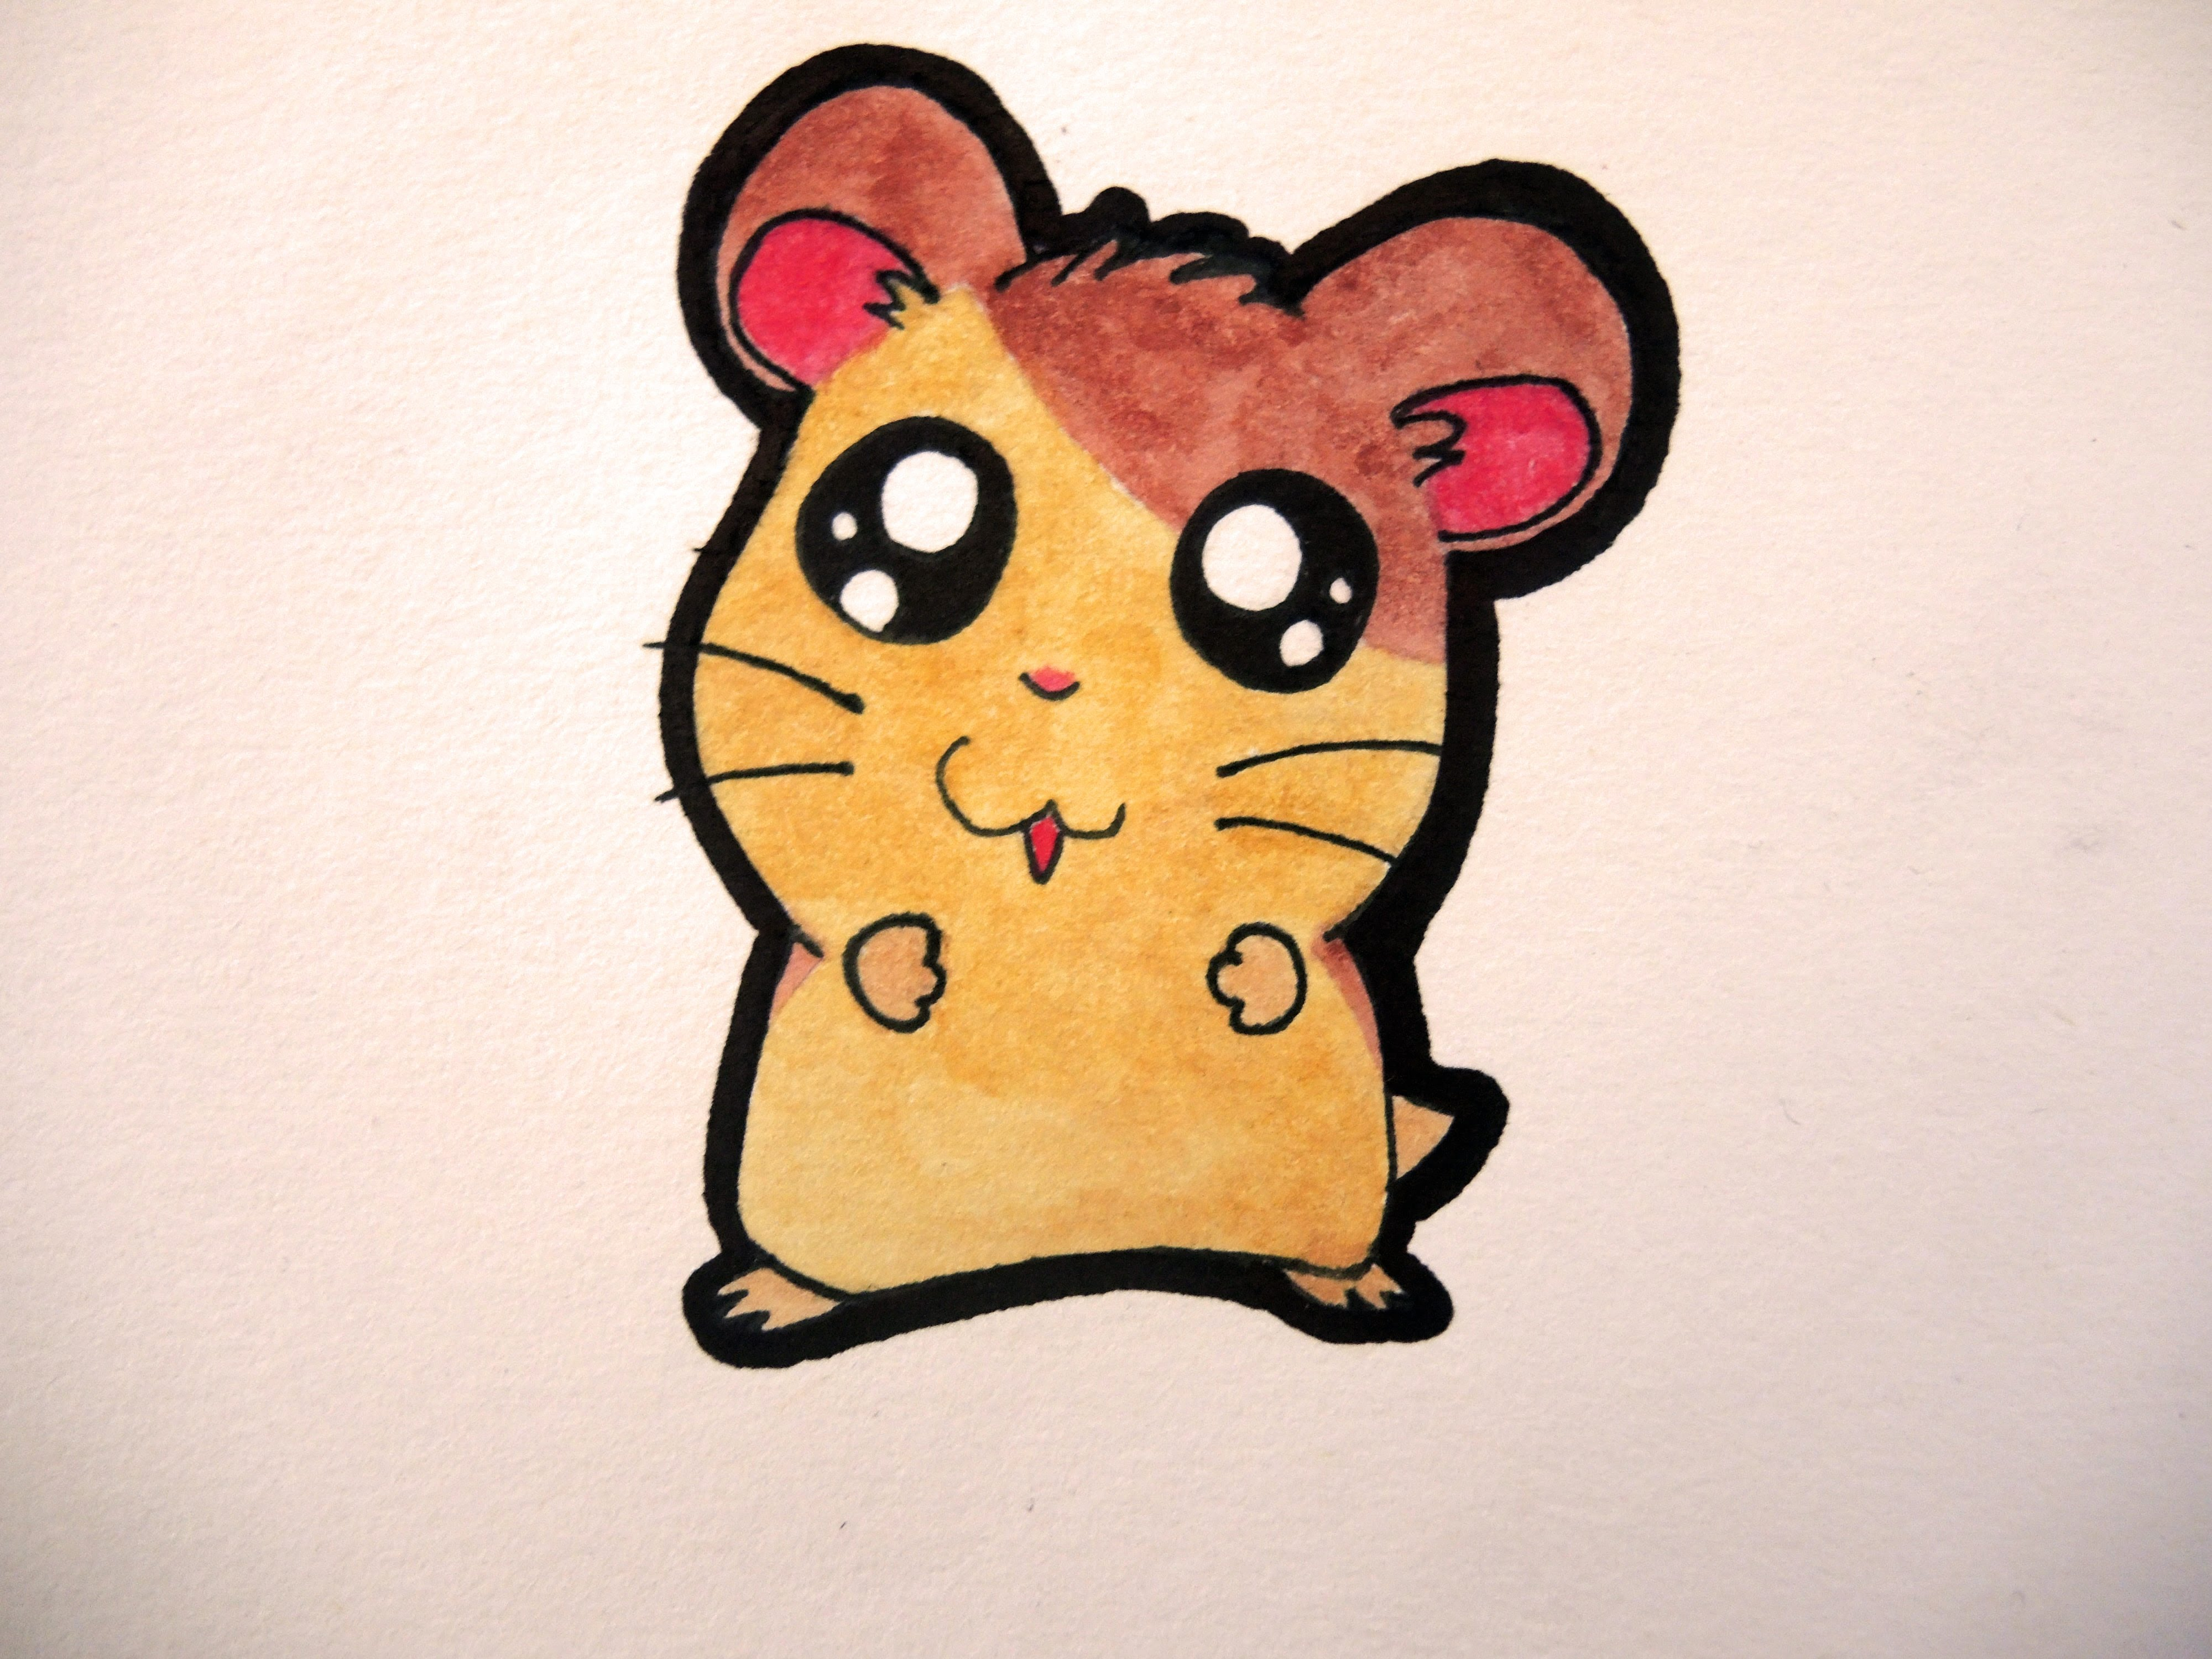 Drawn hamster Cute How (Hamtaro) a to